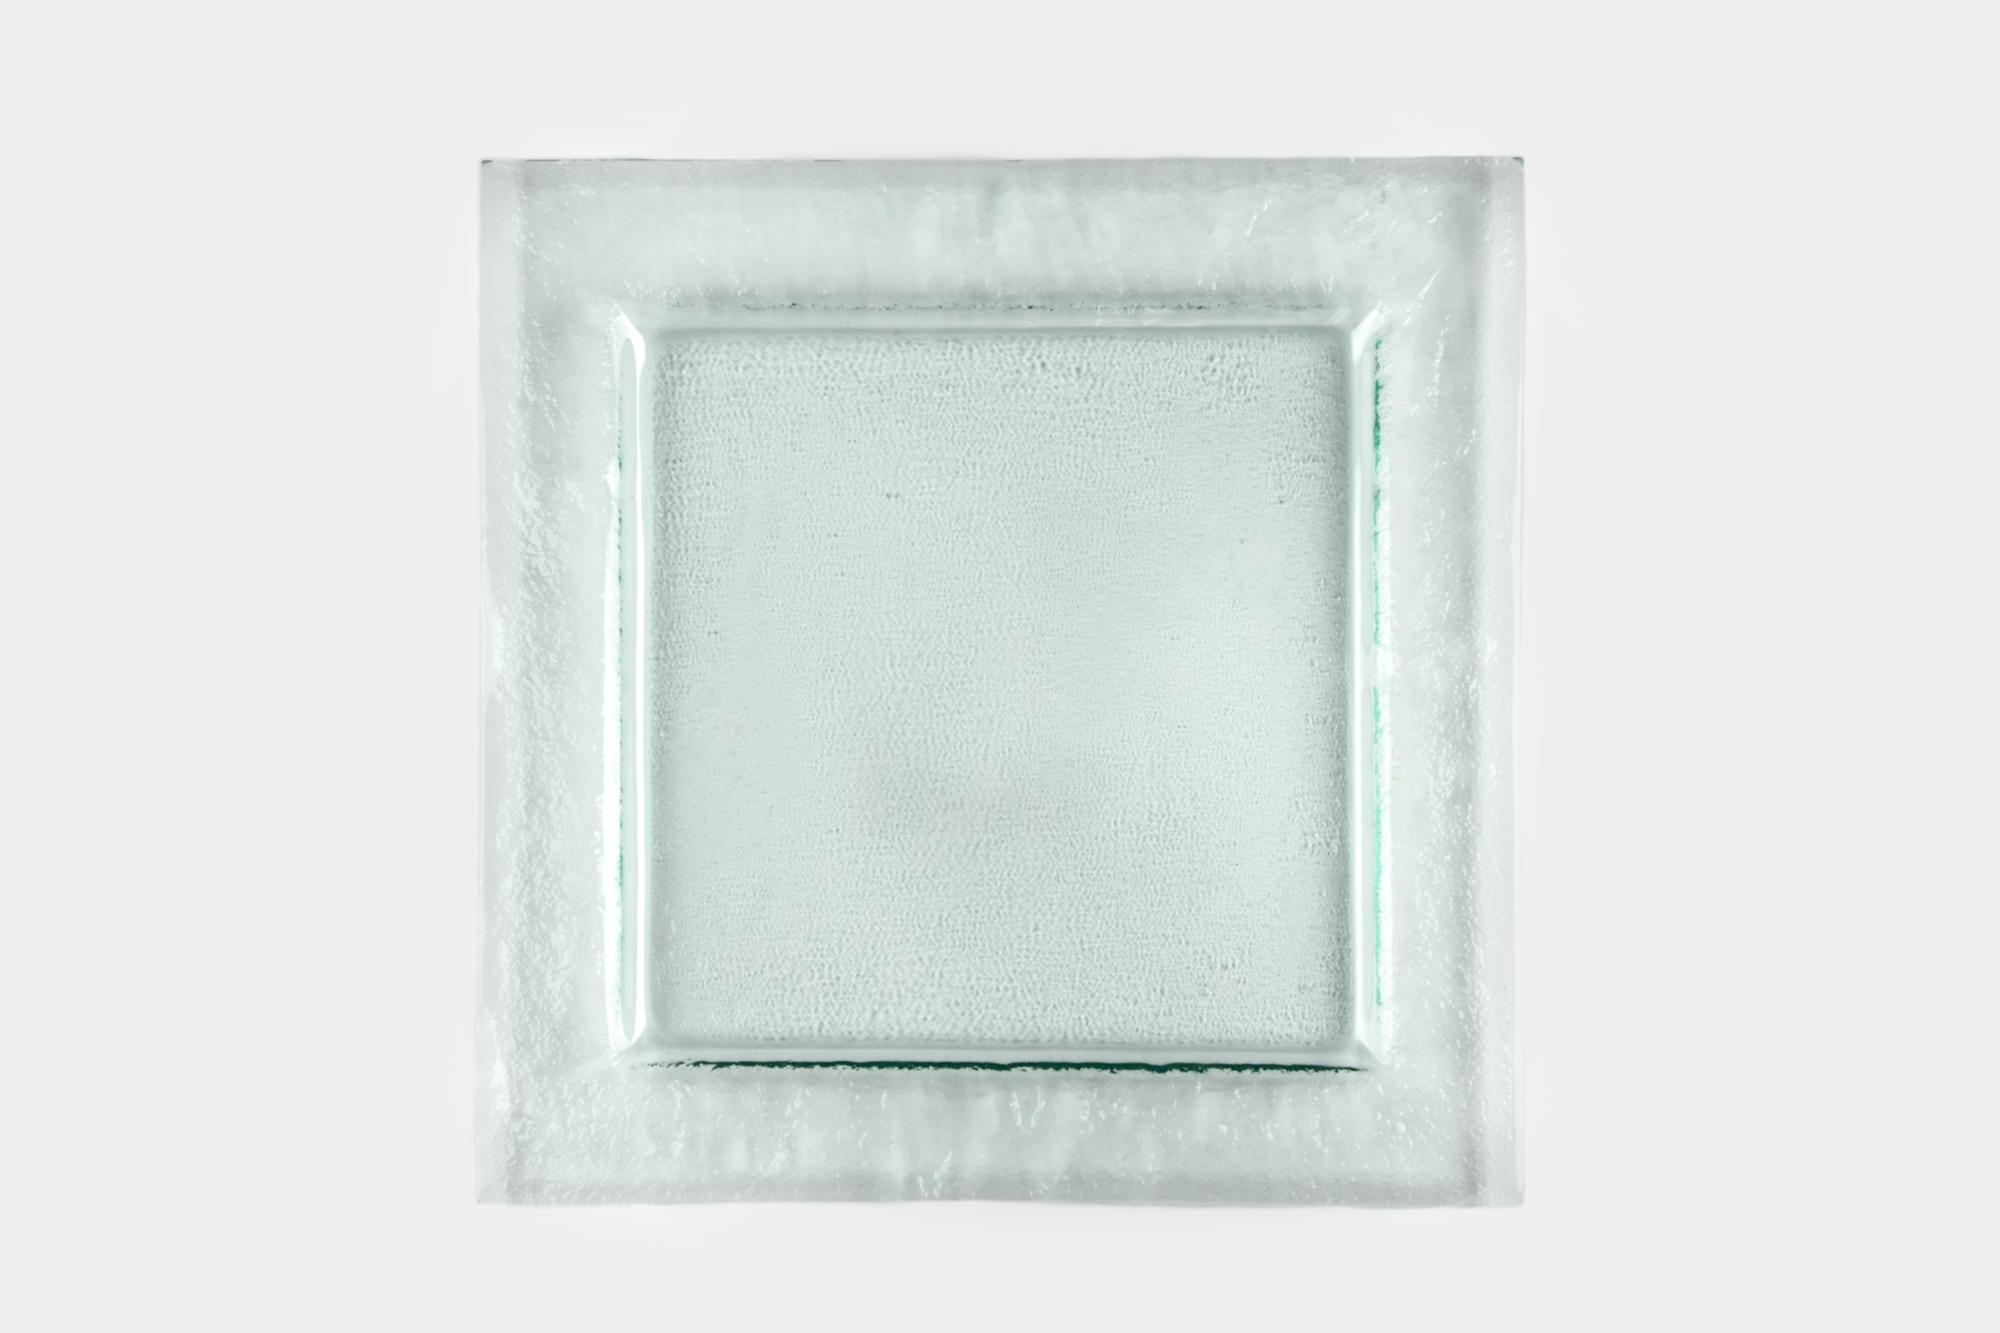 Square charger - Image 1